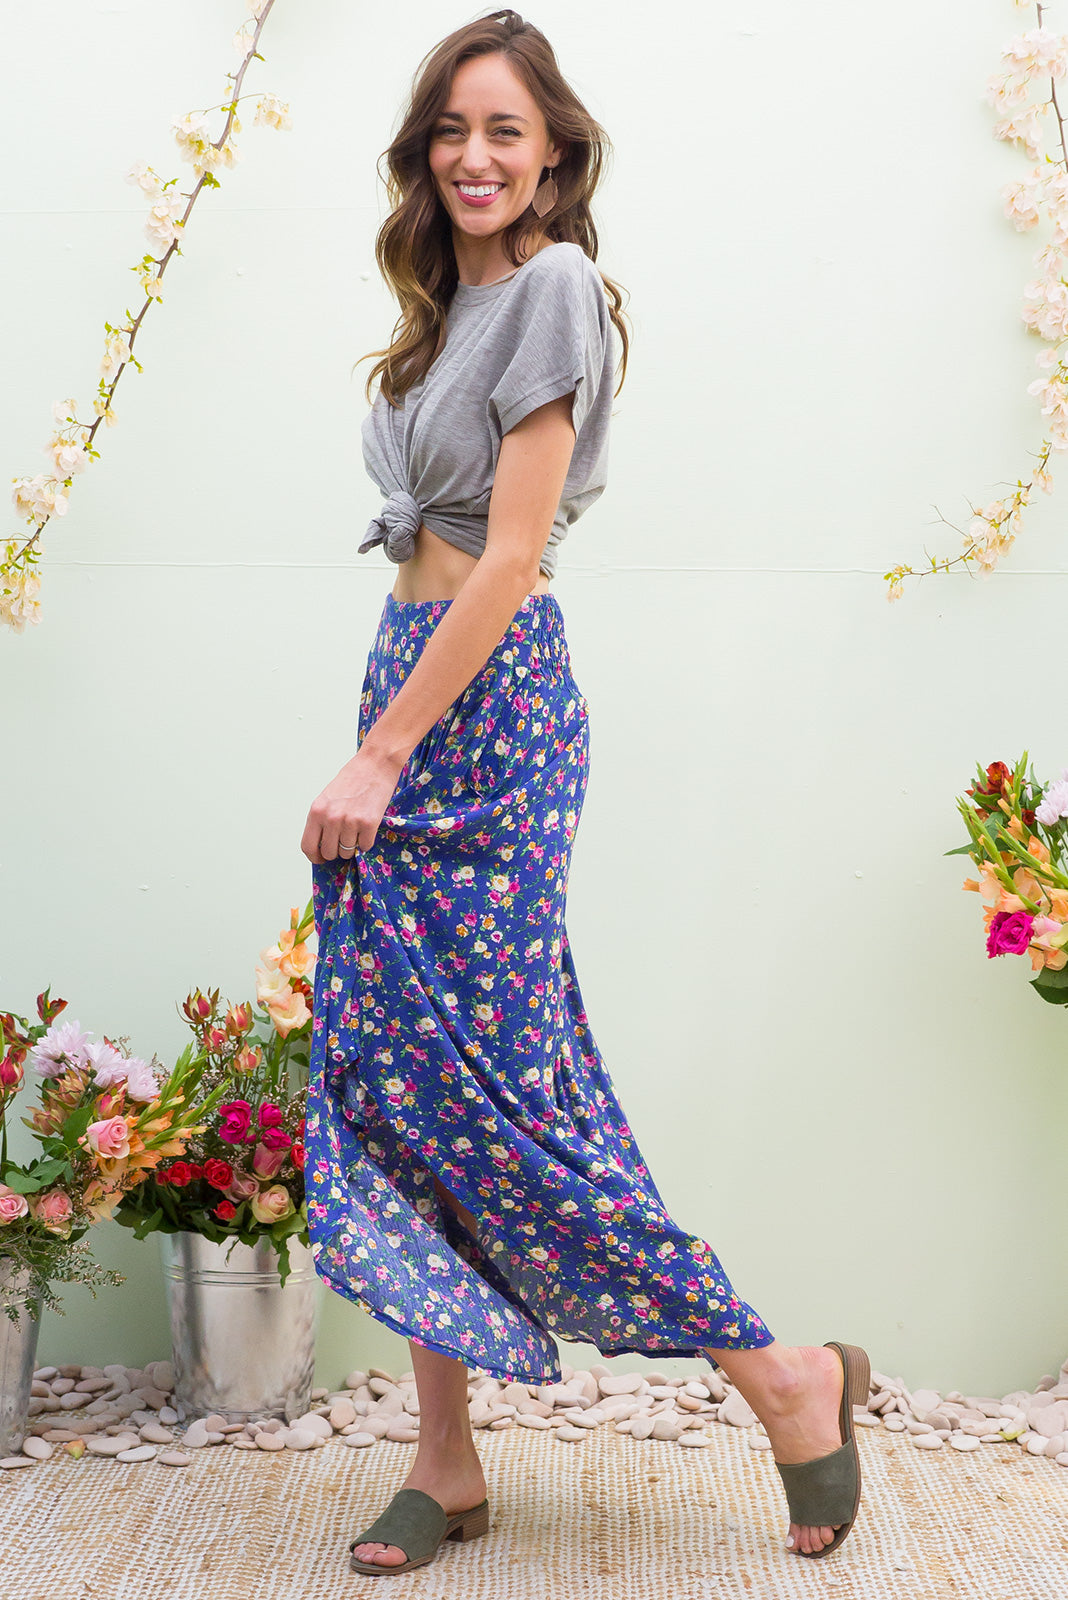 Laguna Lapis Blooms Maxi Skirt with a soft ruched elastic back and pockets in bright lapis blue with a bright floral bohemian vintage style print on crinkle rayon